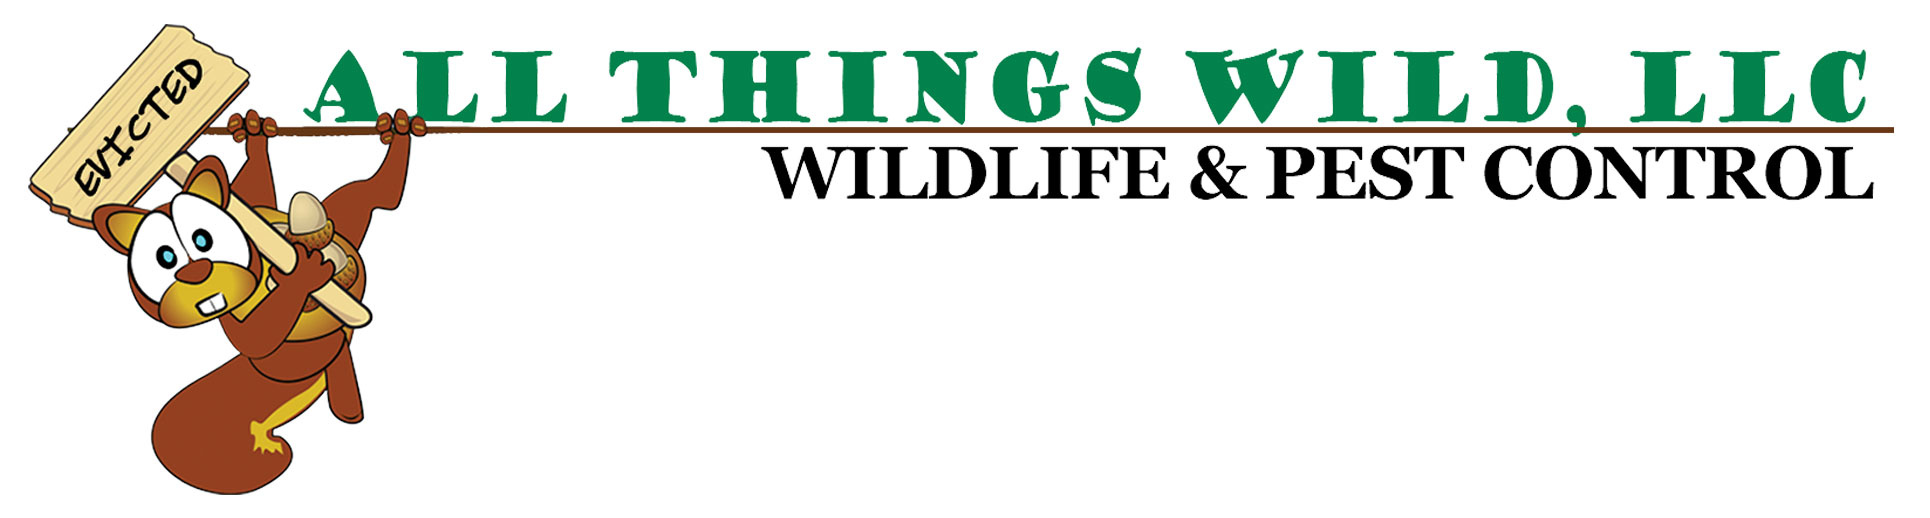 ALL THINGS WILD - Nuisance Wildlife Control